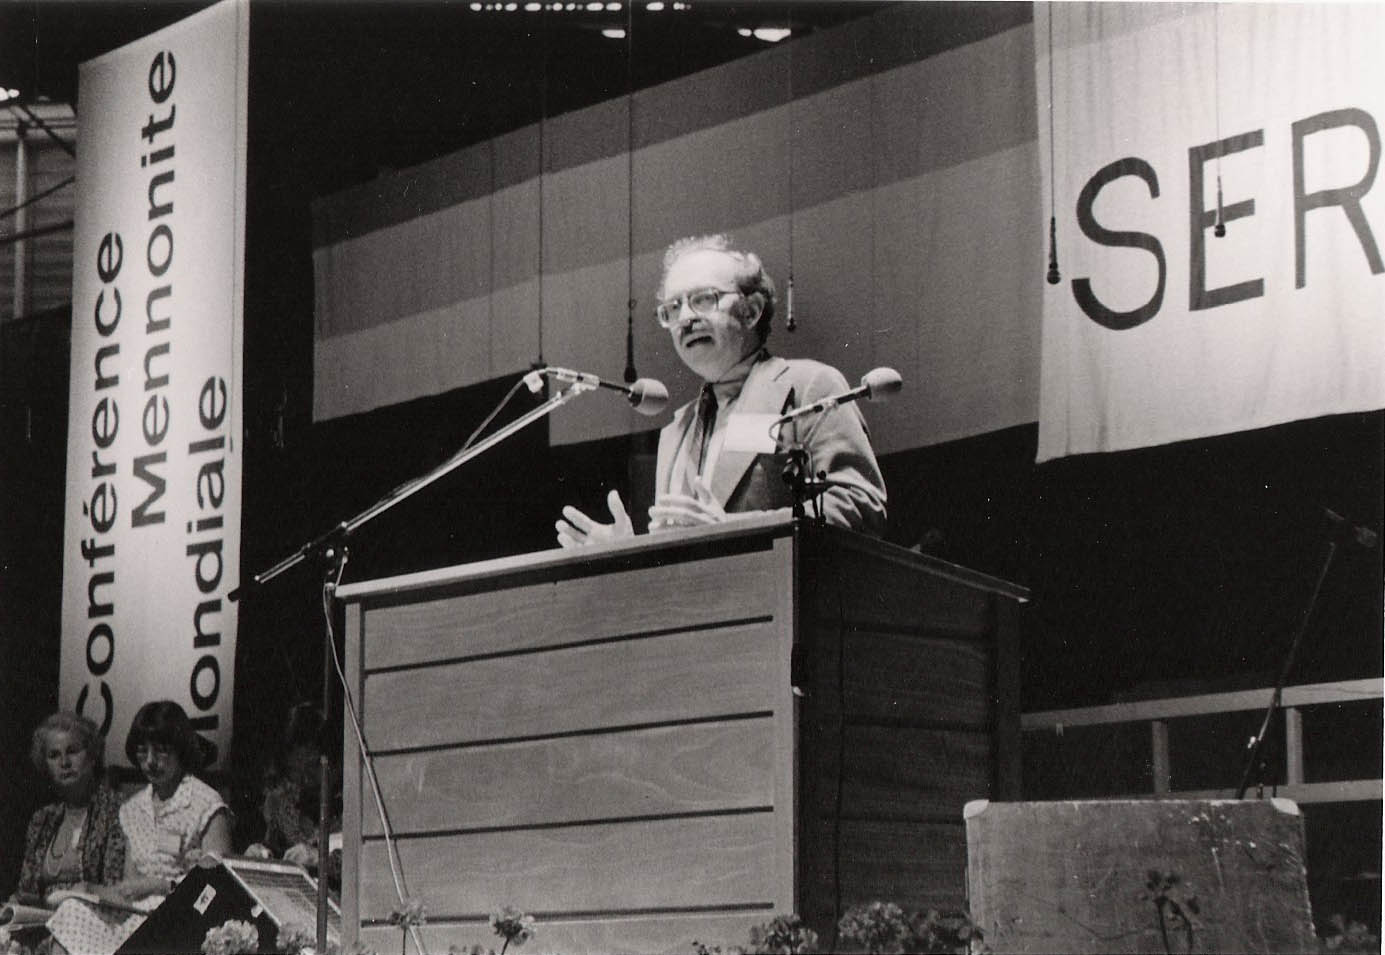 Ronald J. Sider stands behind a podium while making a speech